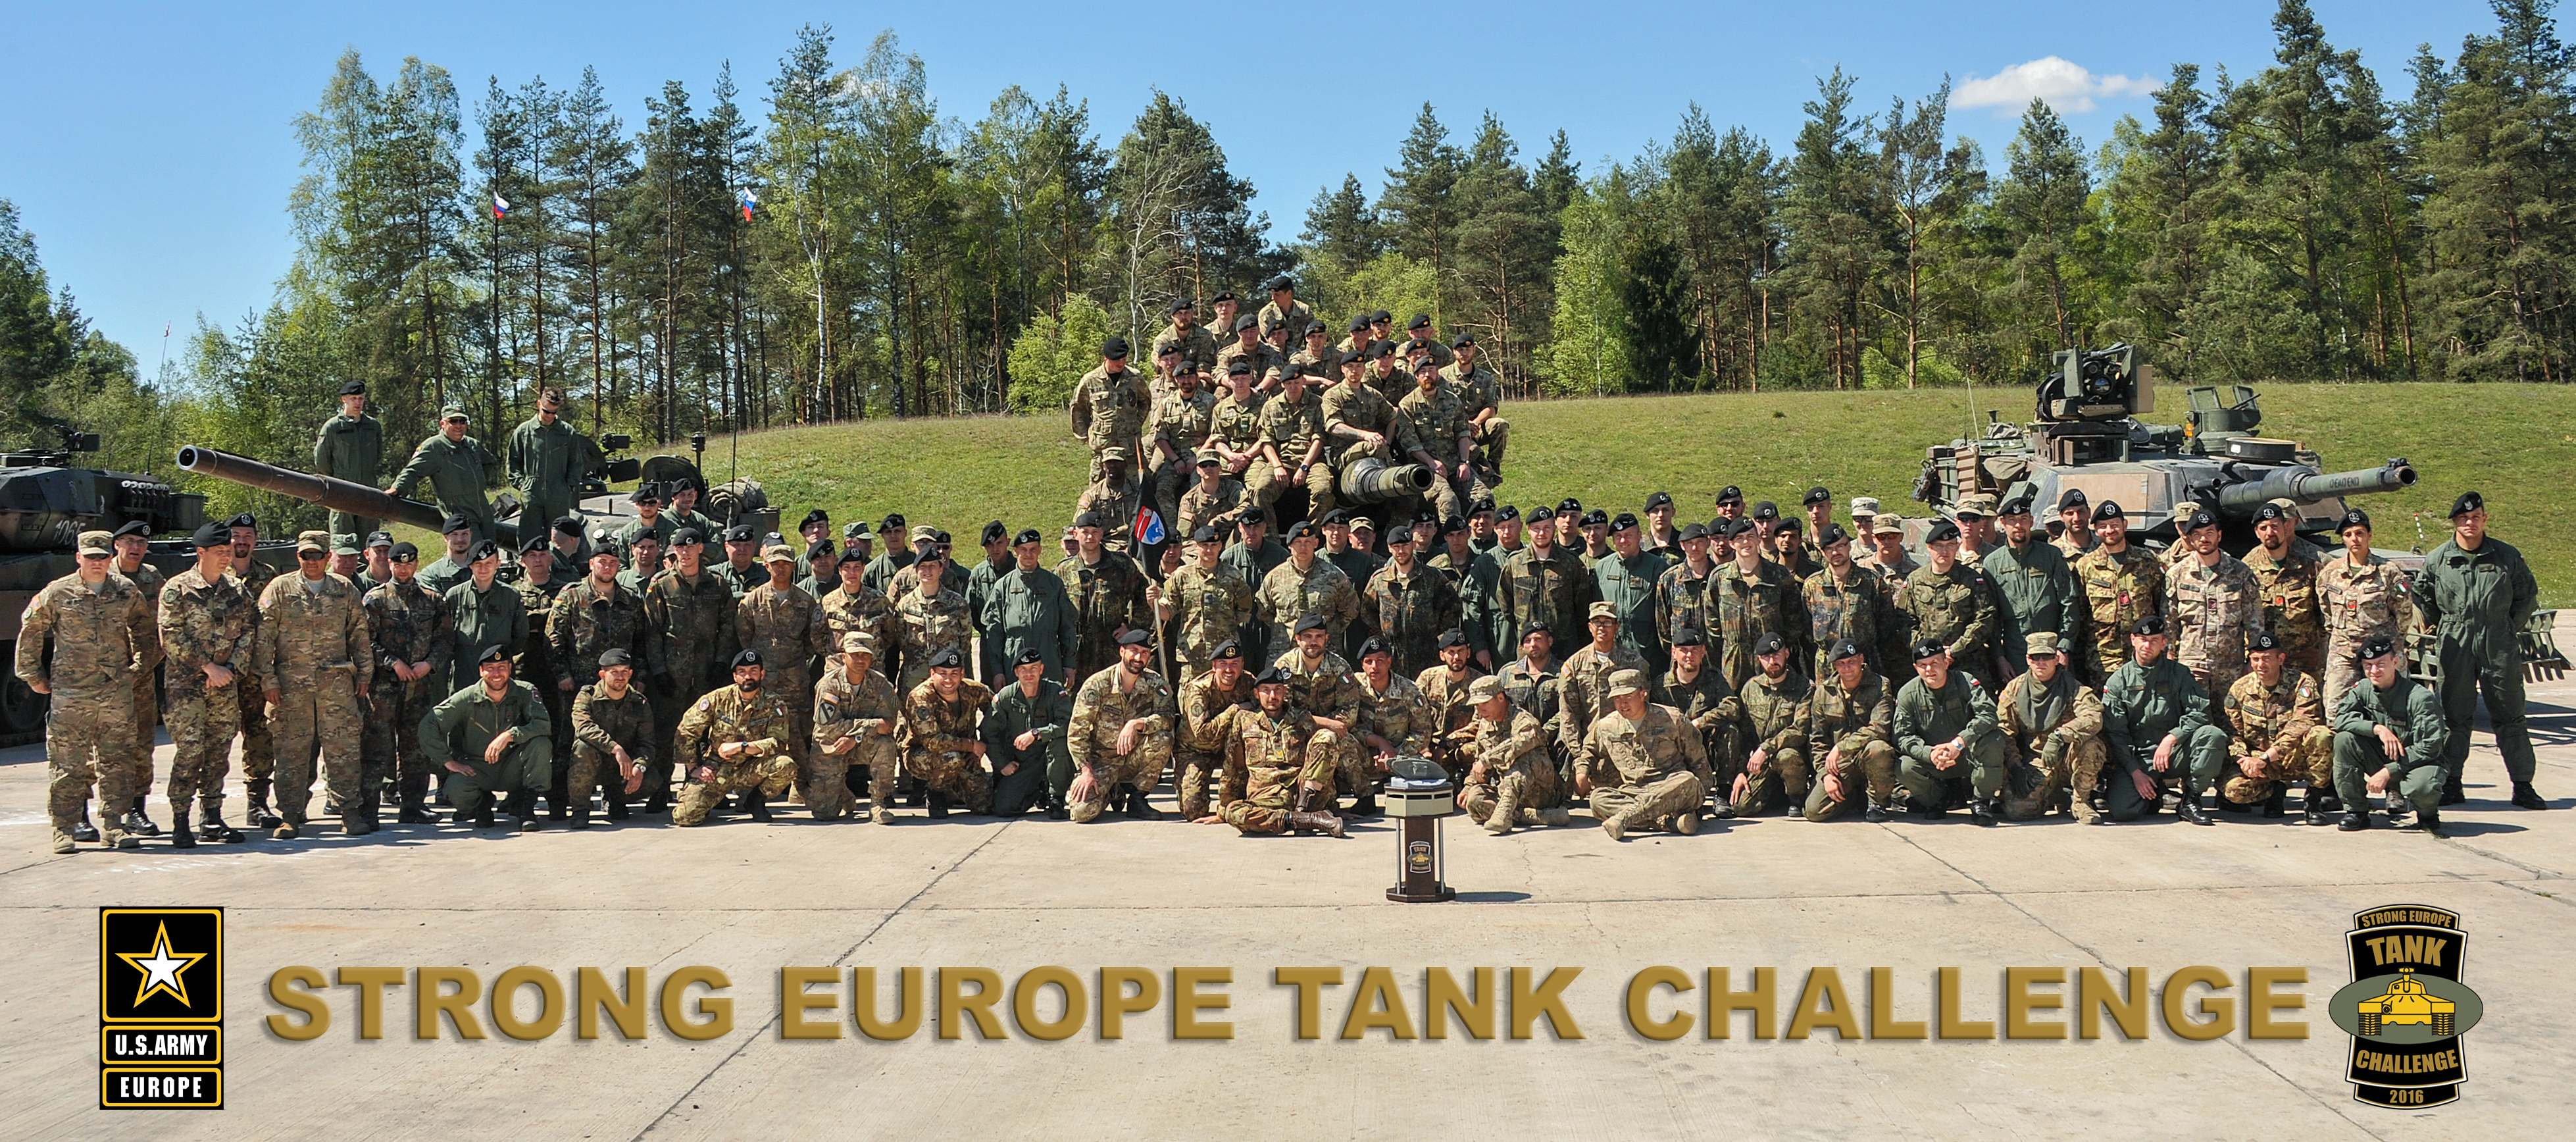 europe tank challenge12 Strong Europe Tank Challenge in Germany